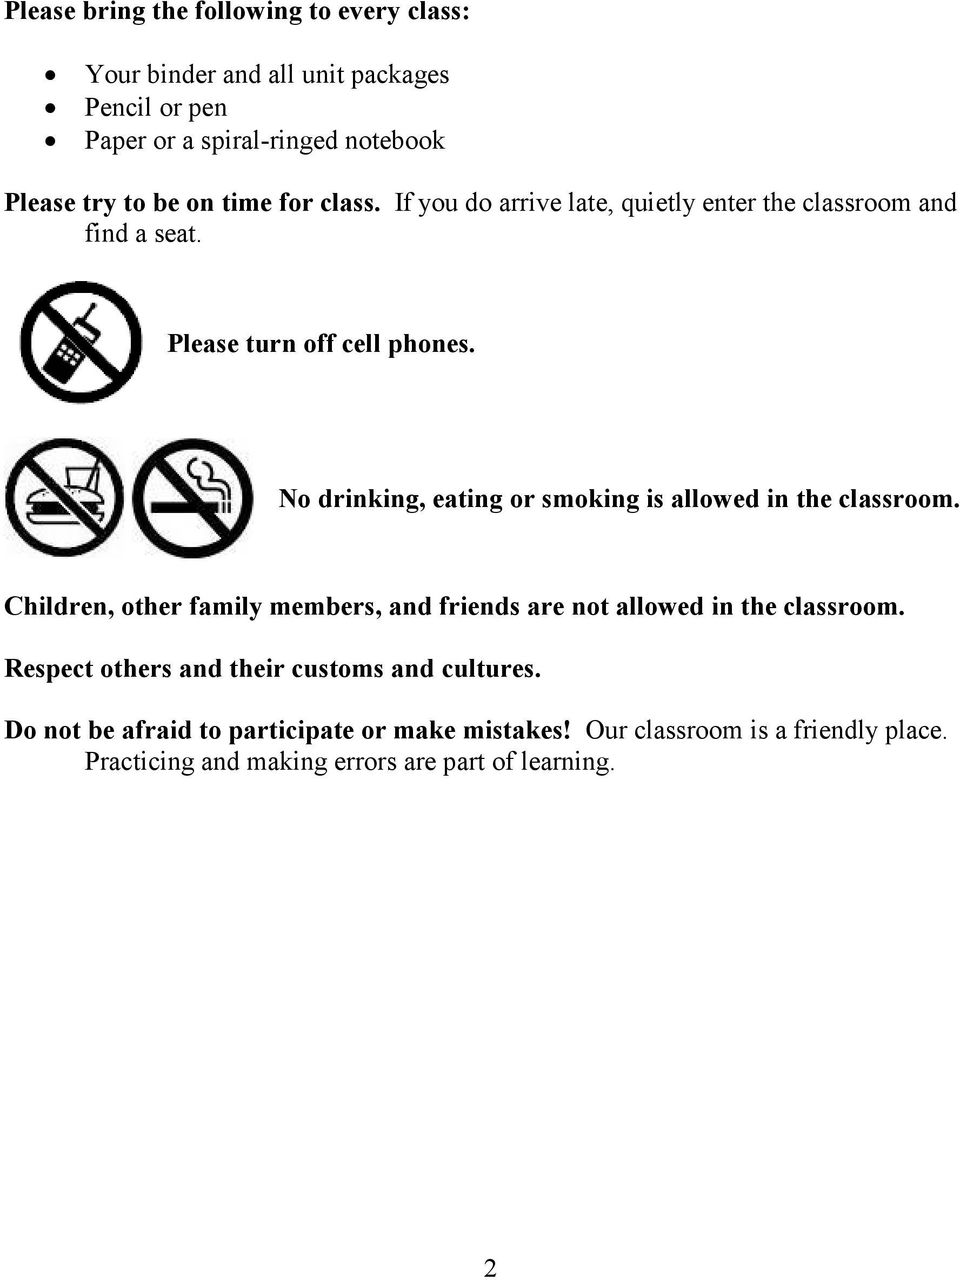 No drinking, eating or smoking is allowed in the classroom. Children, other family members, and friends are not allowed in the classroom.